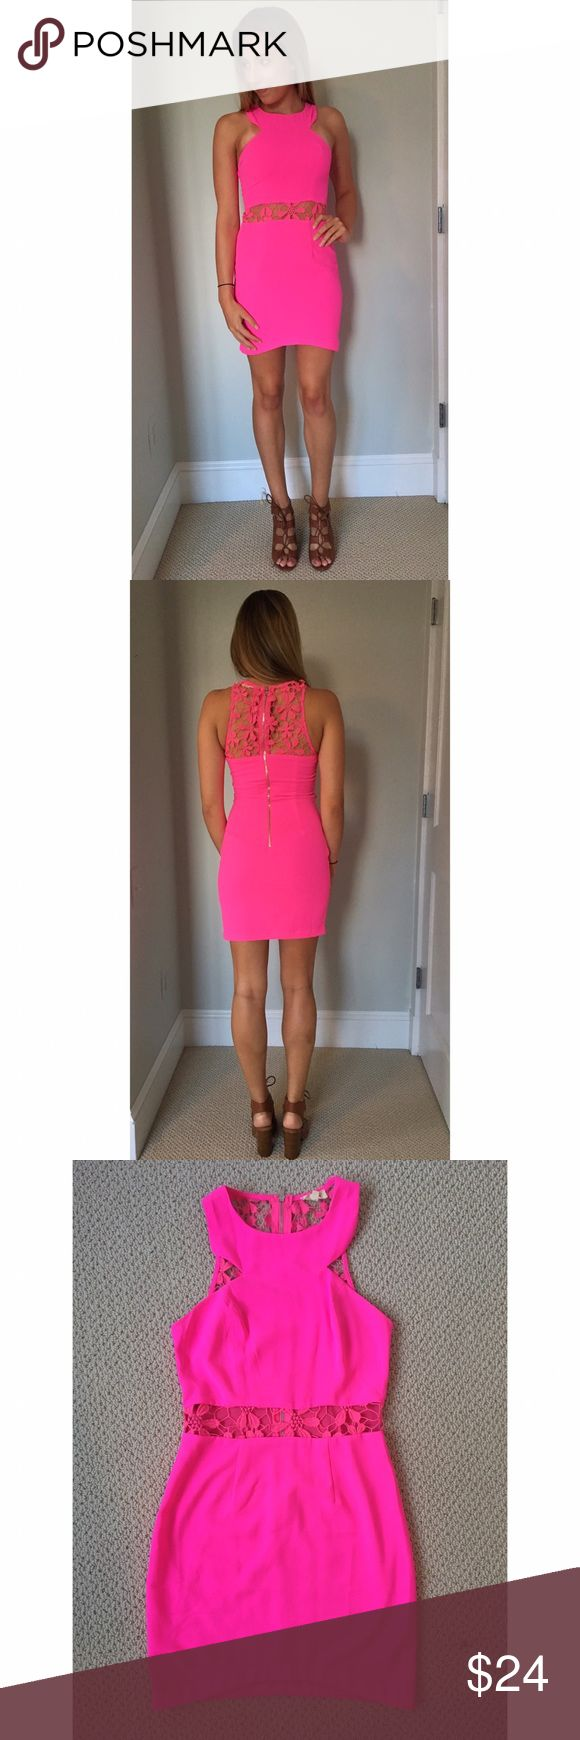 Neon Pink Cocktail Dress Bright neon pink bodycon dress with cut-out floral mid section. Worn once! Tea n Cup Dresses Mini